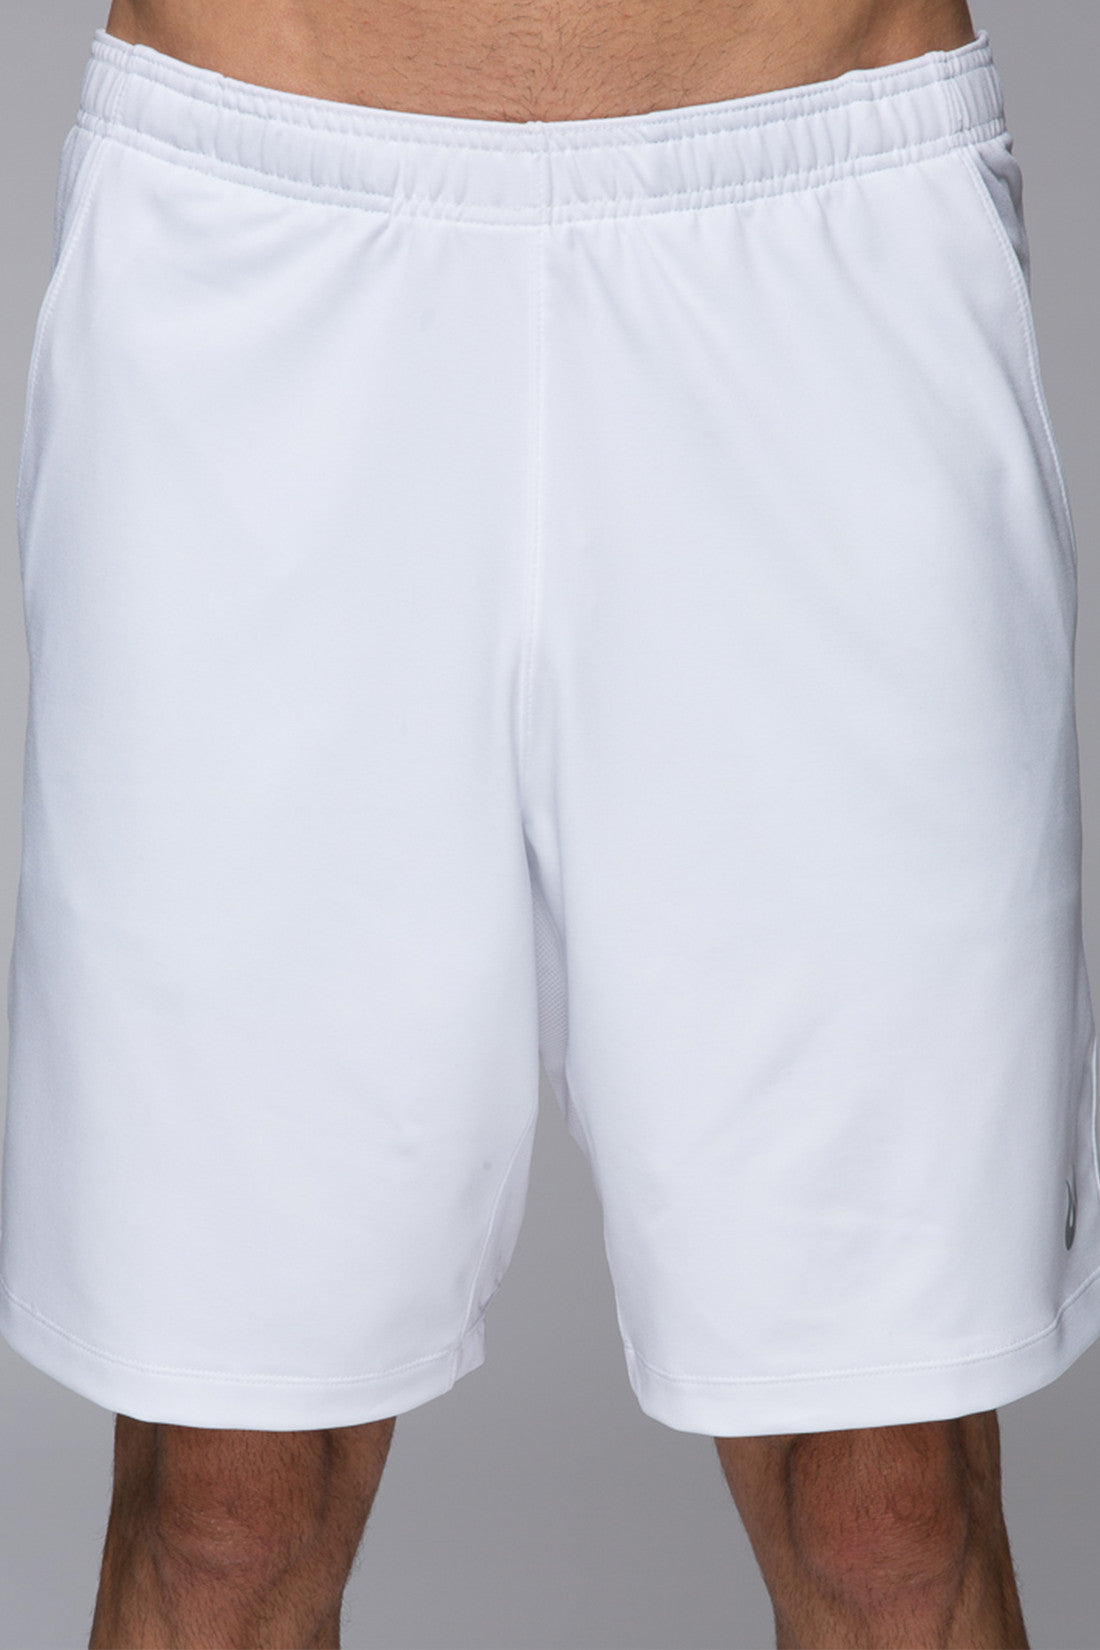 Men's performance shorts, gym shorts, breathable, 8inch shorts, blue, light weight, sweat wicking, Legacy Knit short - Bright White